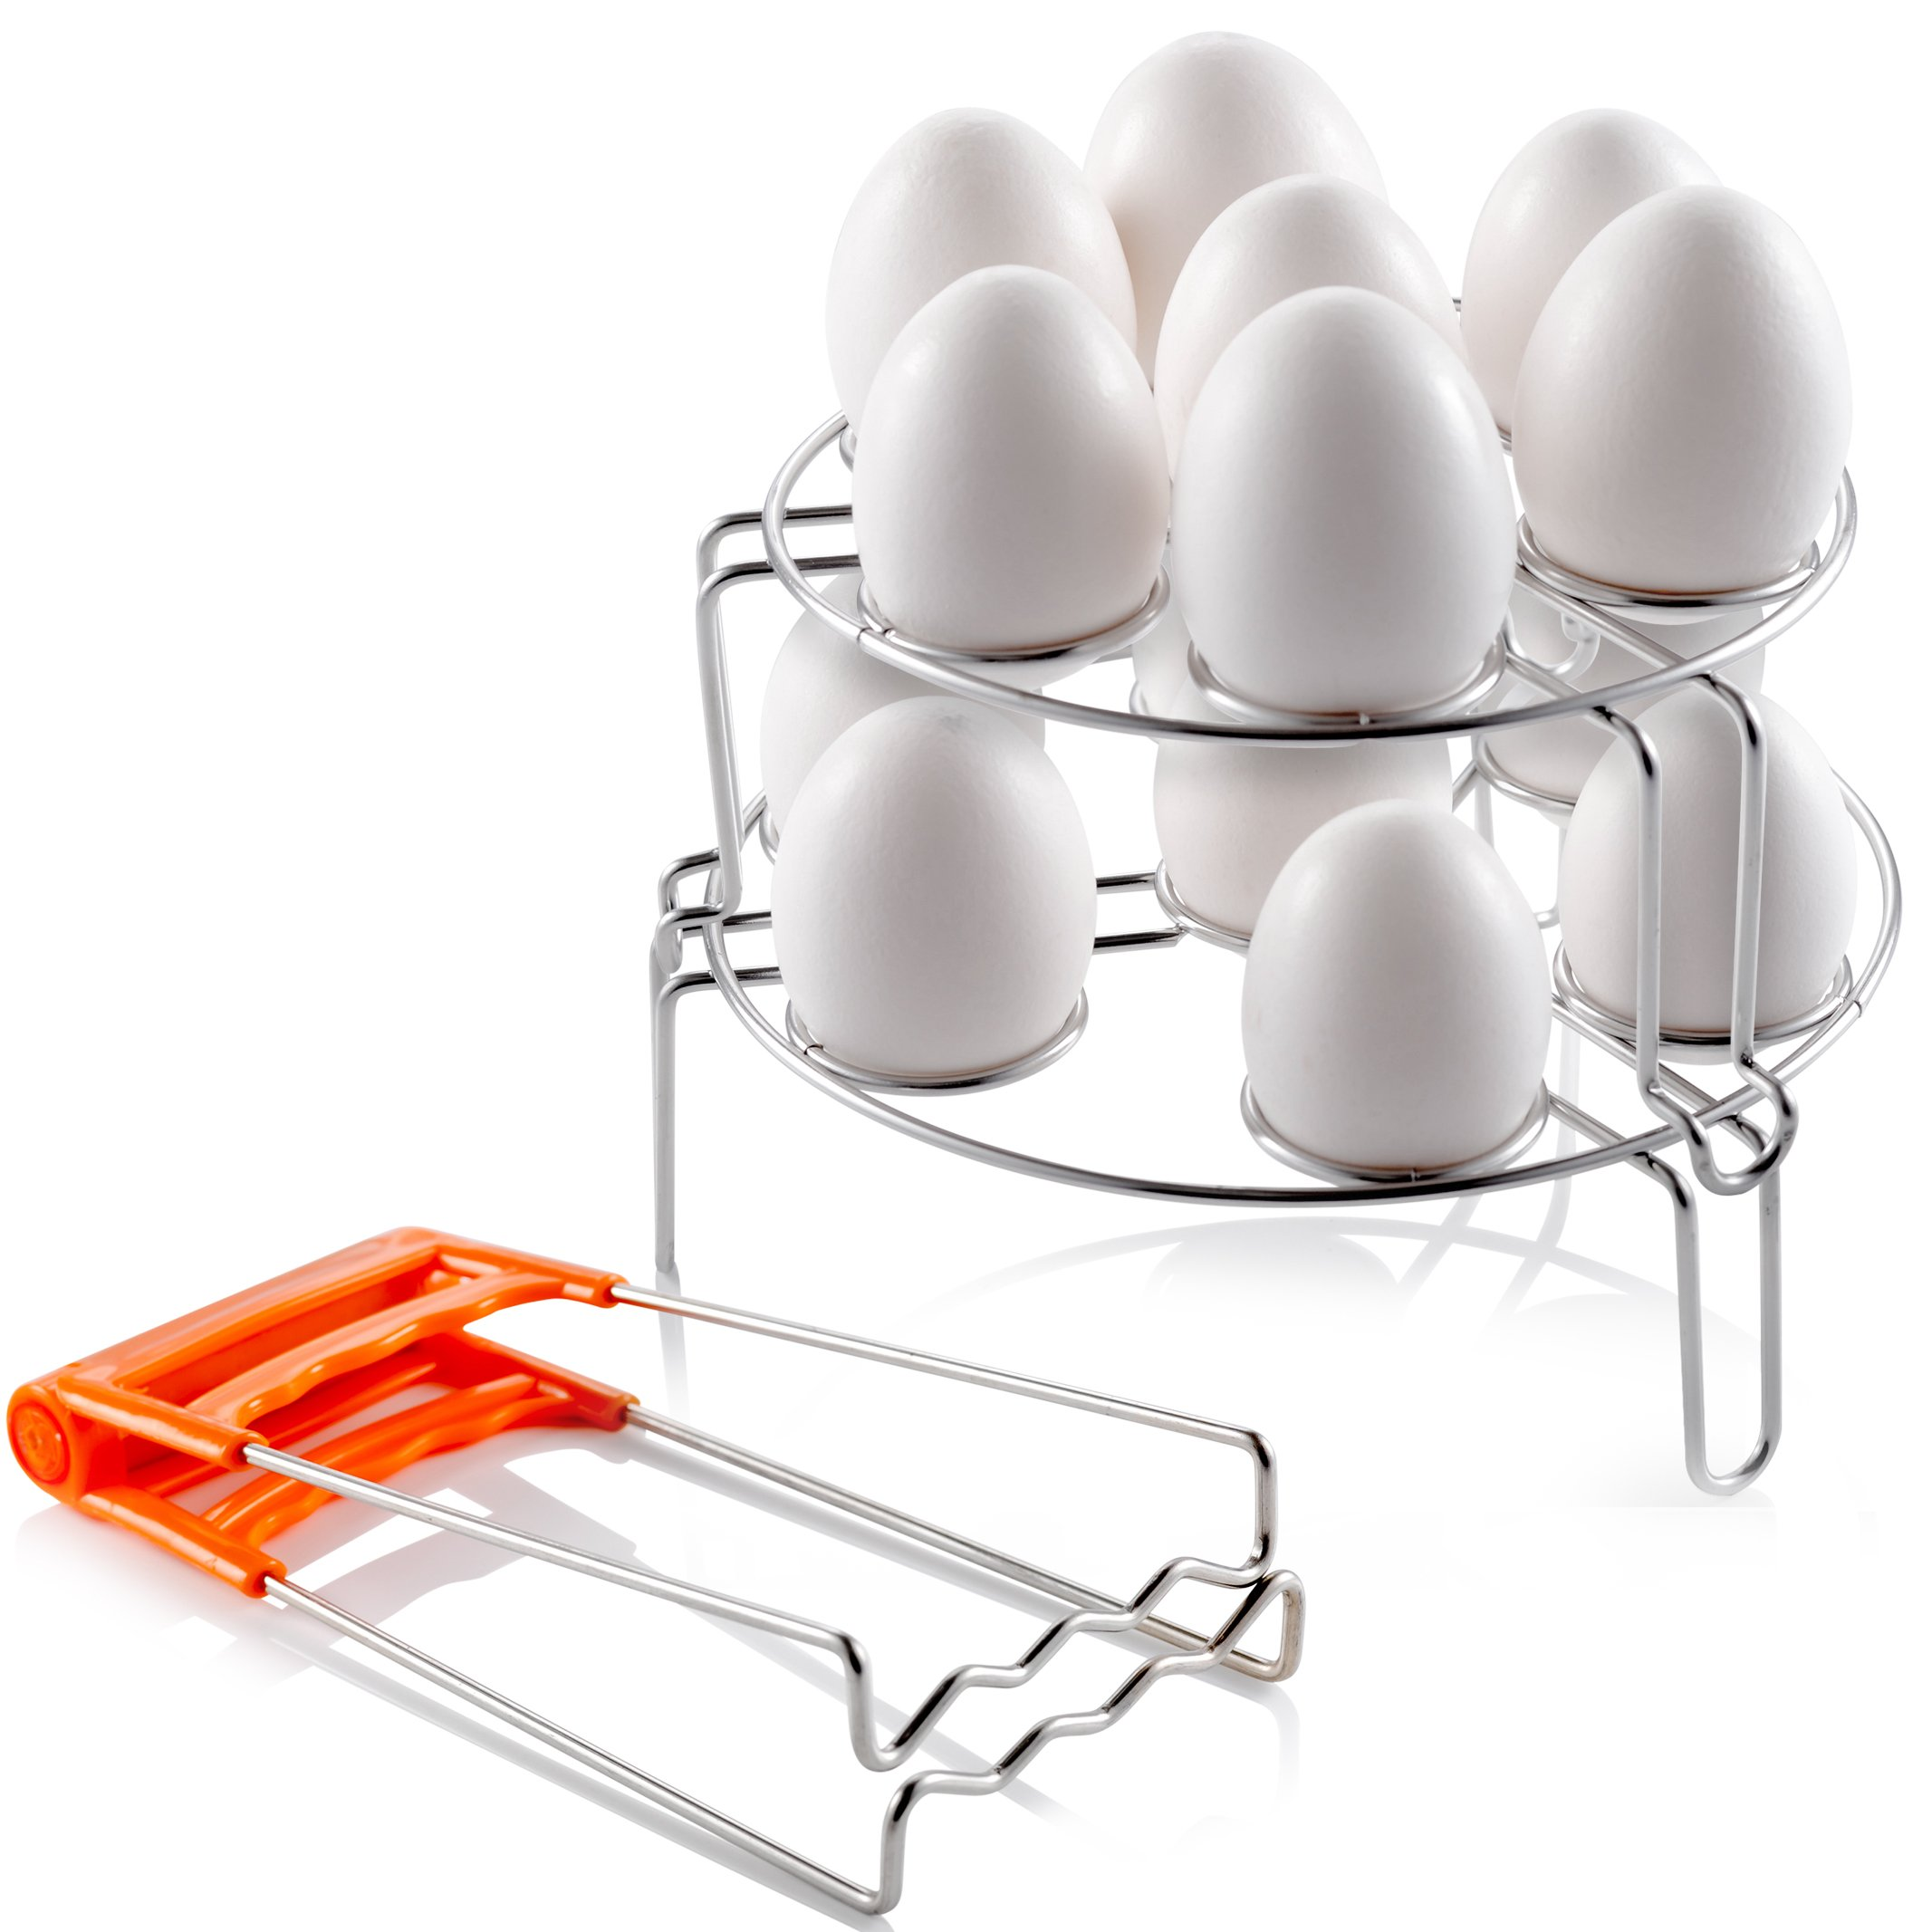 Stainless Steel Egg Steamer Rack for Instant Pot (2PC) | BONUS Plate Gripper | Stackable Steaming Stand for Pressure Cooker | Multipurpose Boiled Egg Cooker, Vegetable & Meat Steam Basket